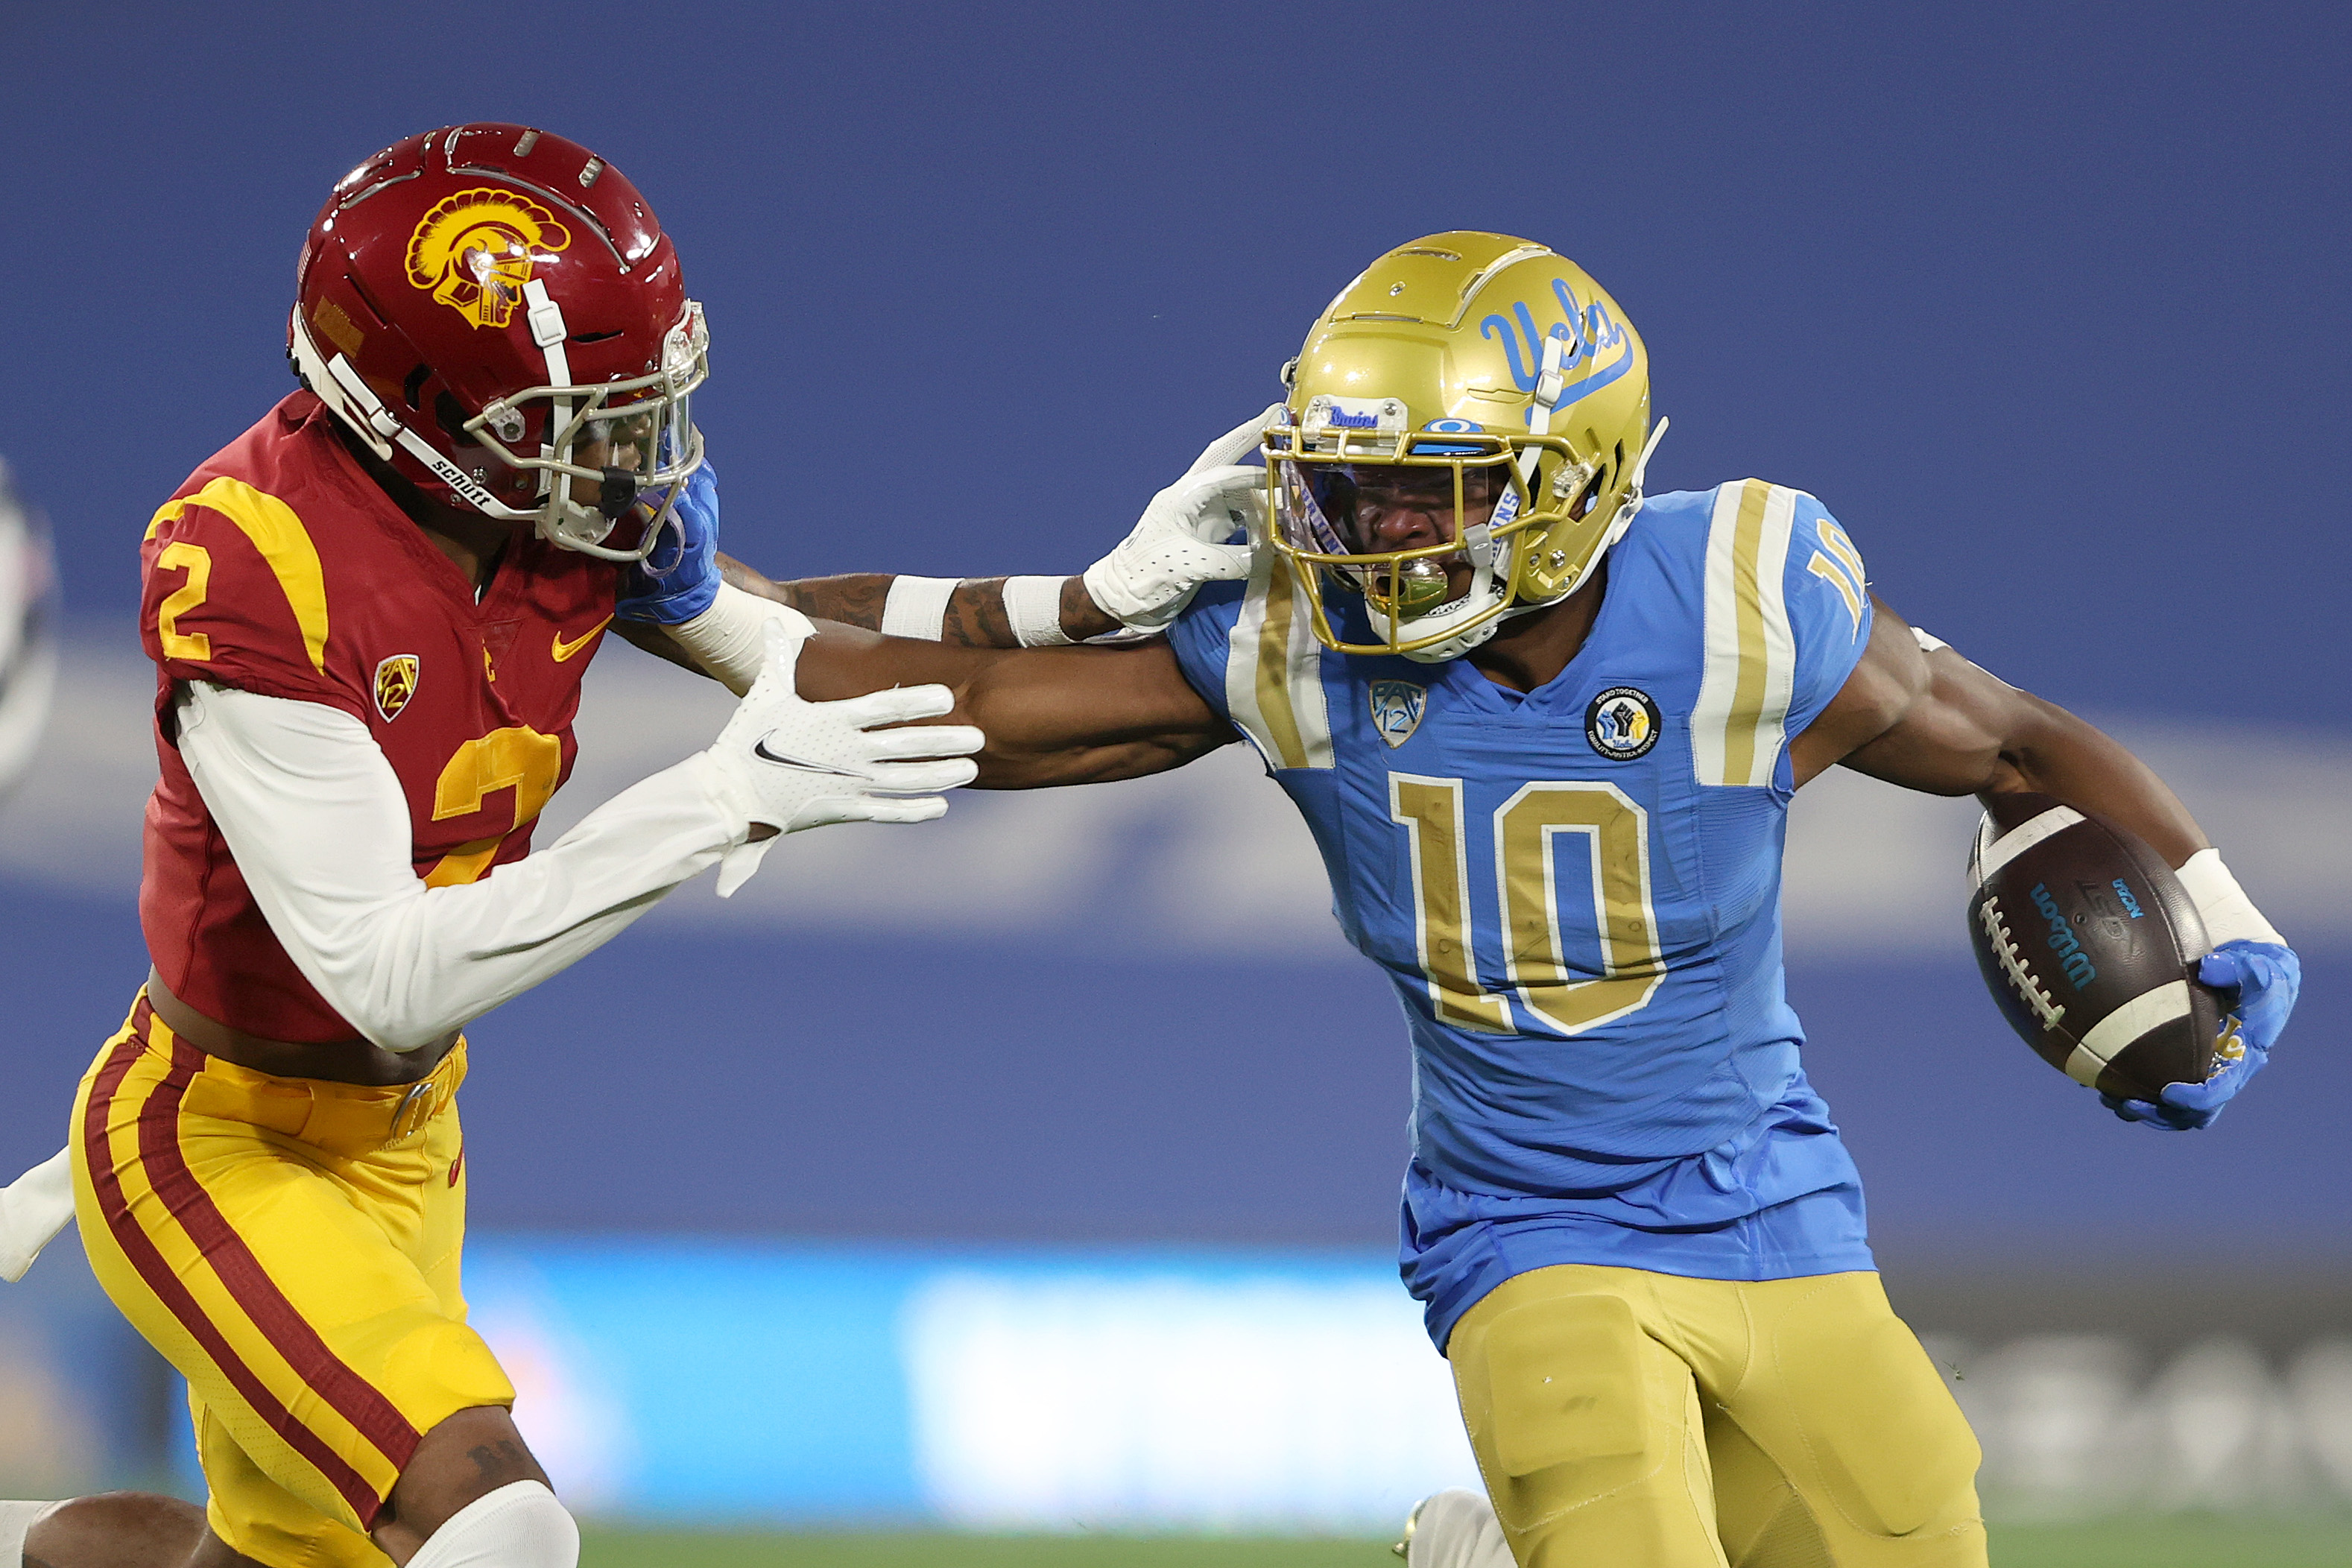 Demetric Felton #10 of the UCLA Bruins eludes the tackle of Olaijah Griffin #2 of the USC Trojans during the first half of a game at the Rose Bowl on December 12, 2020 in Pasadena, California.